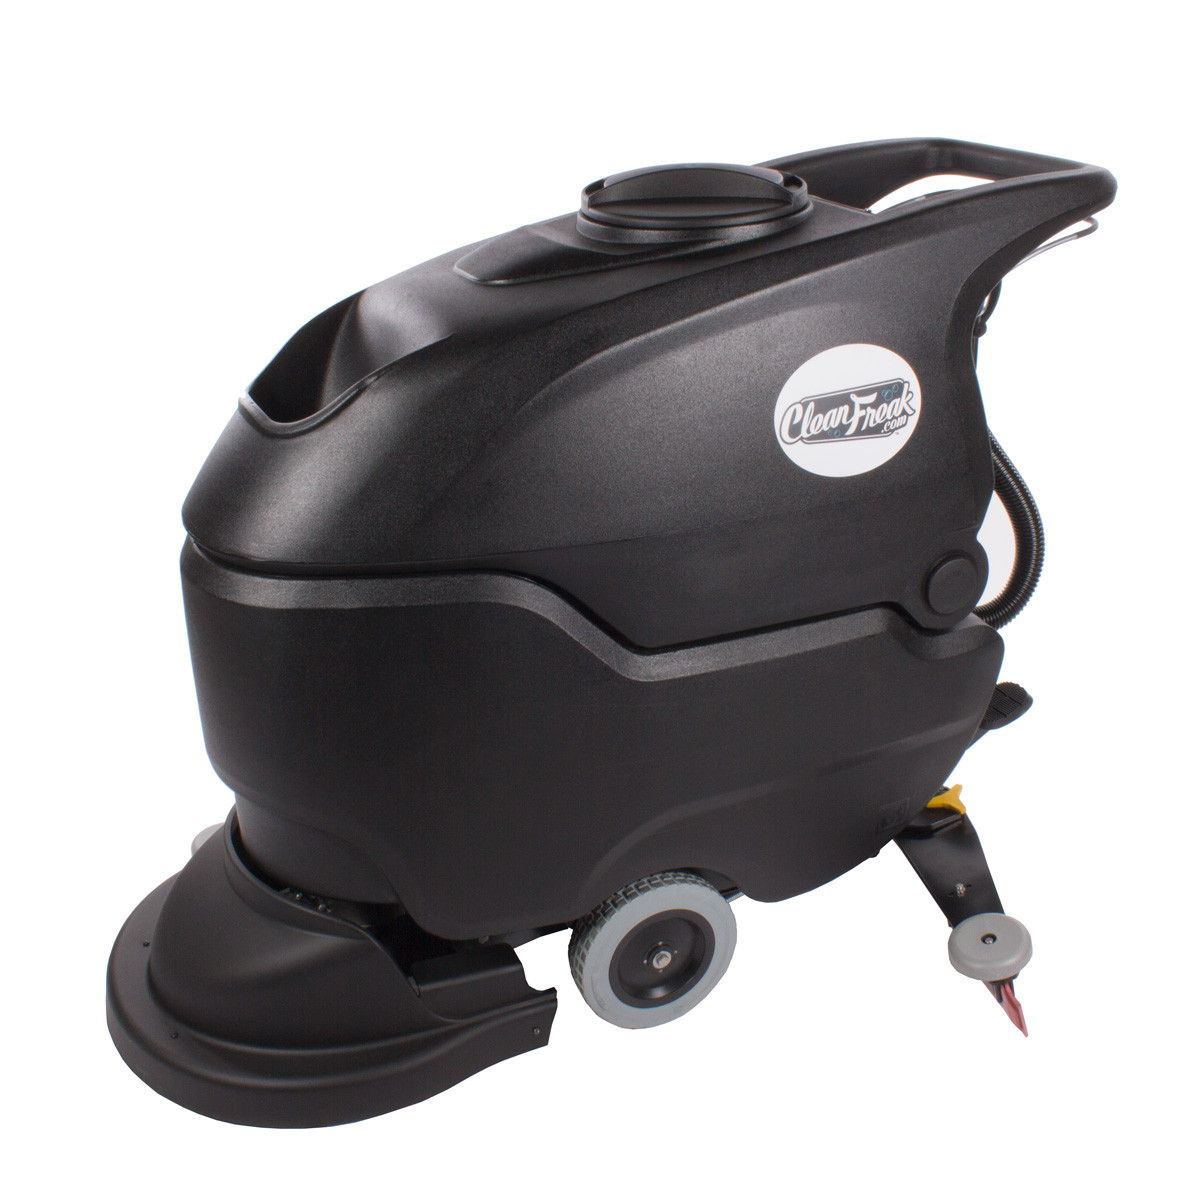 CleanFreak® U0027Performer 20u0027 Automatic Floor Scrubber